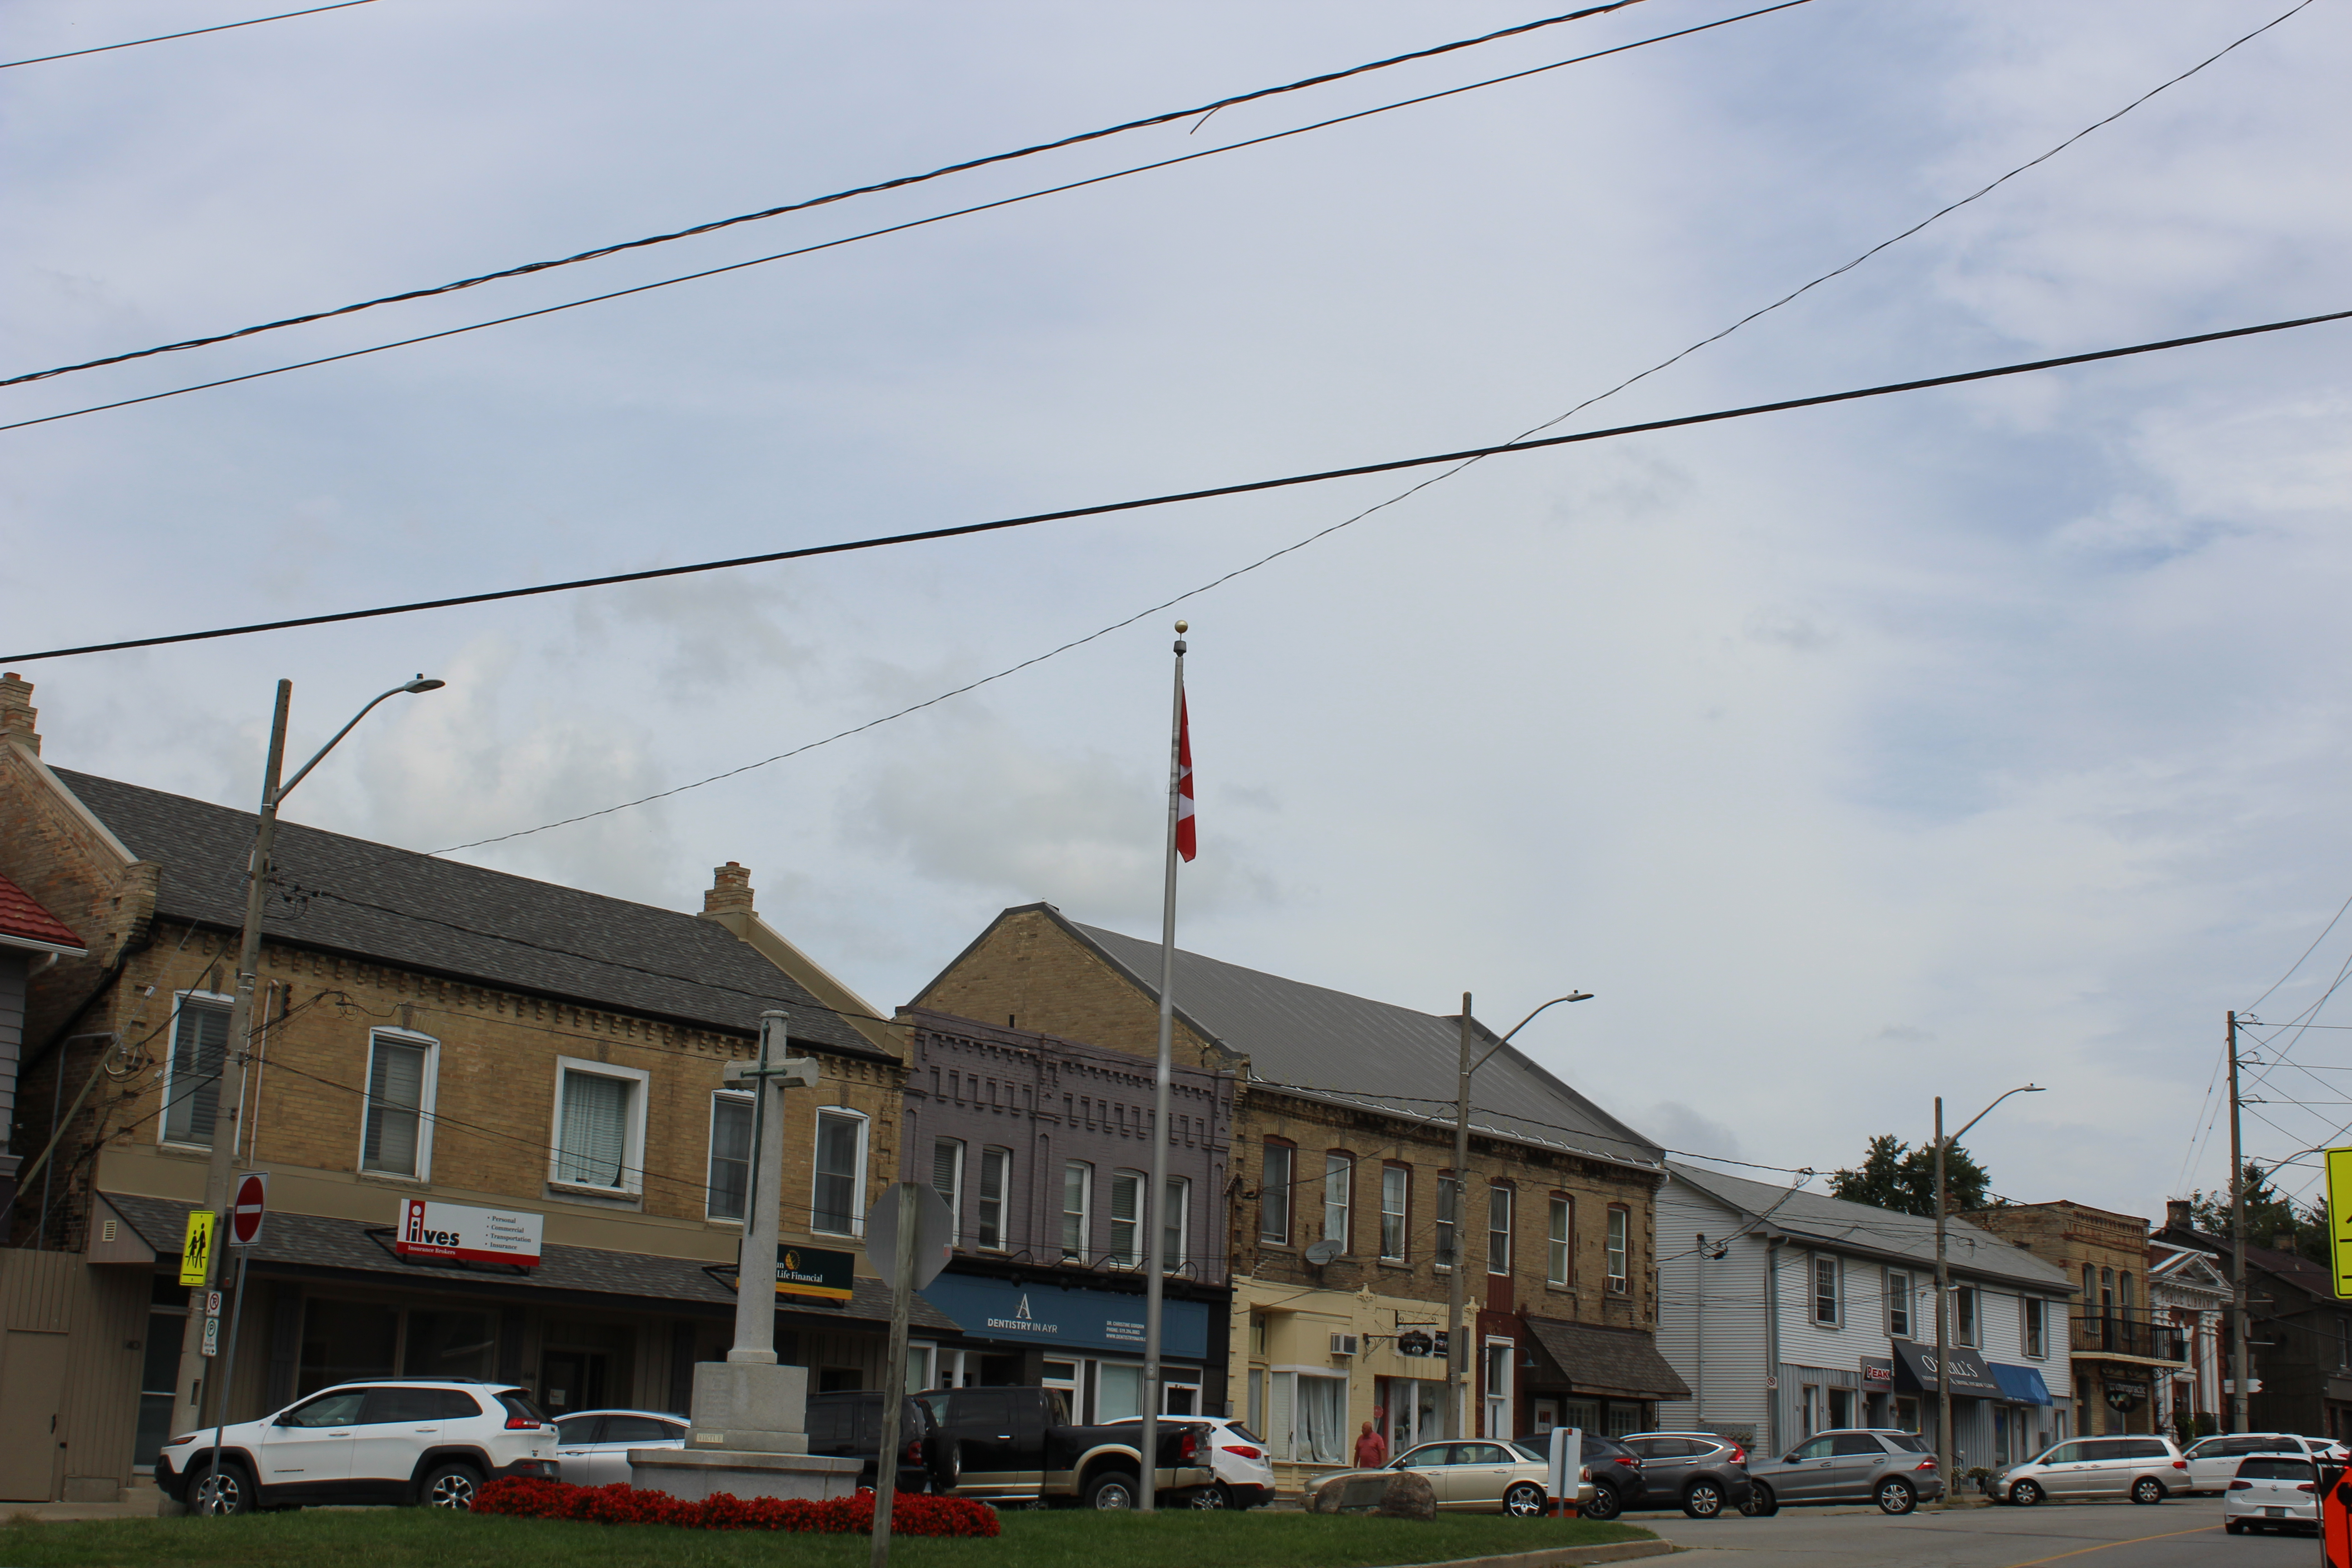 Energy Efficient LEDs on main street in downtown Ayr